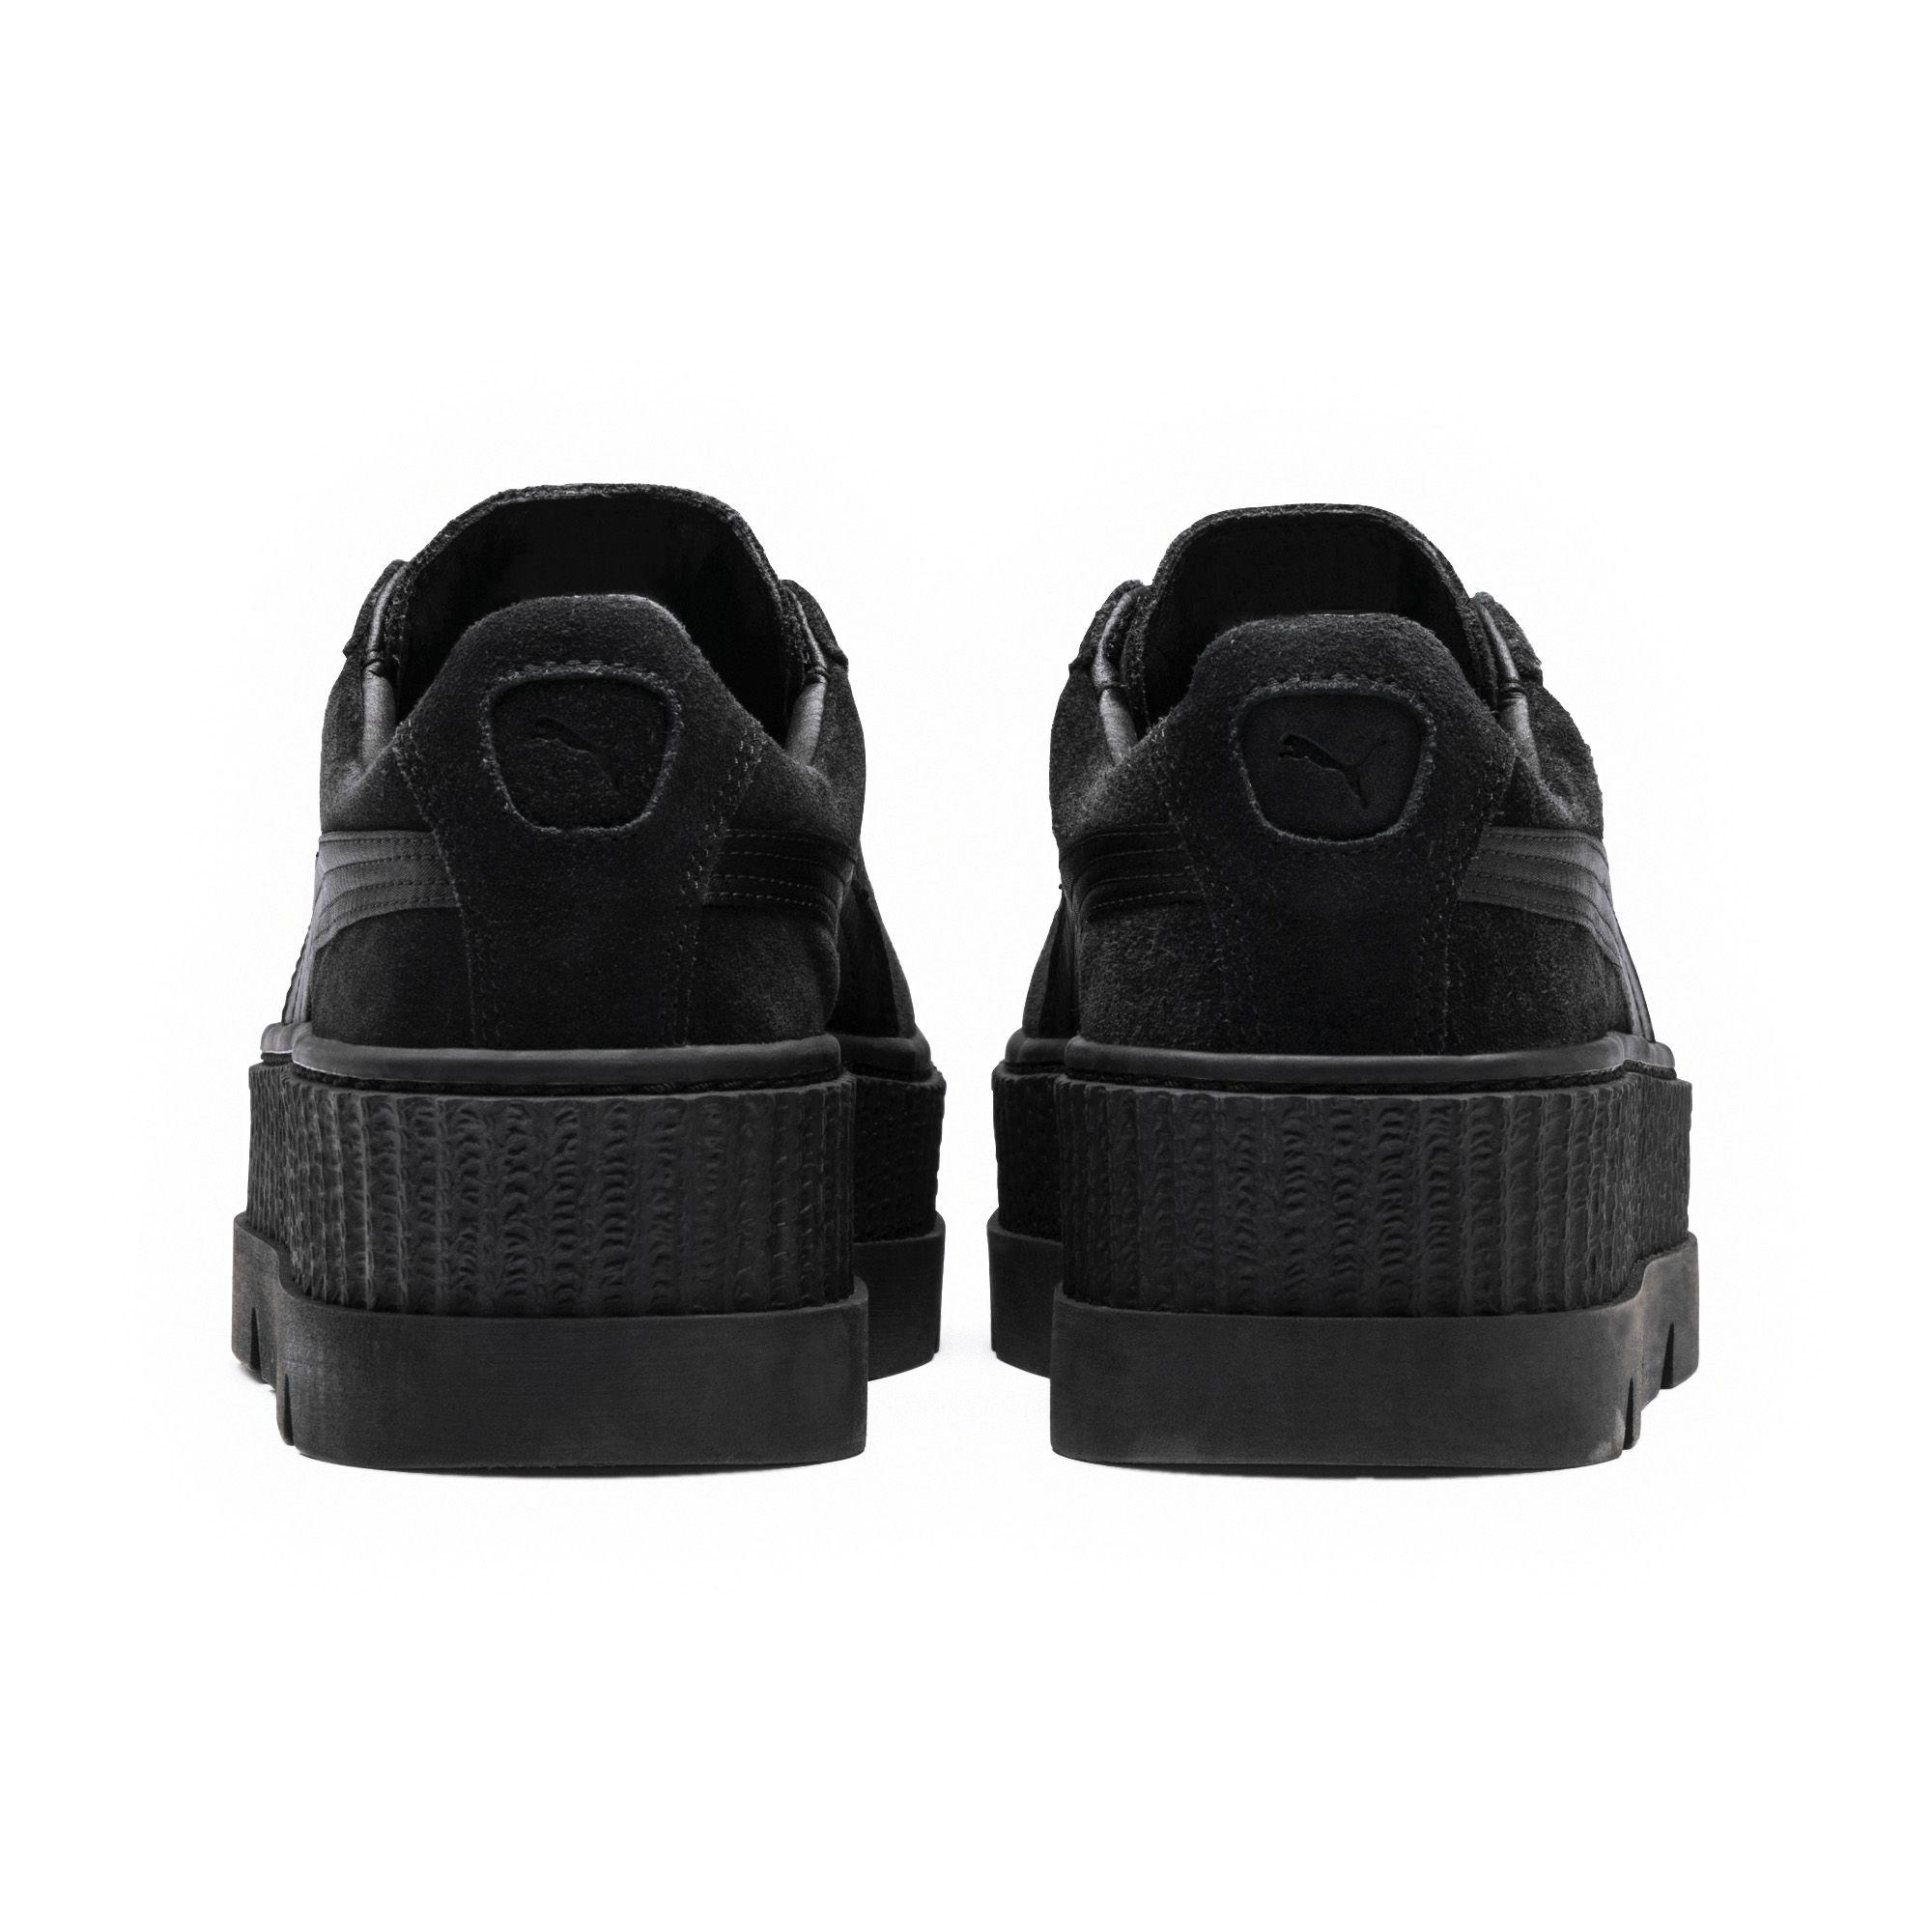 Lyst - PUMA Fenty Suede Cleated Creeper Men s in Black for Men 543c36f0a